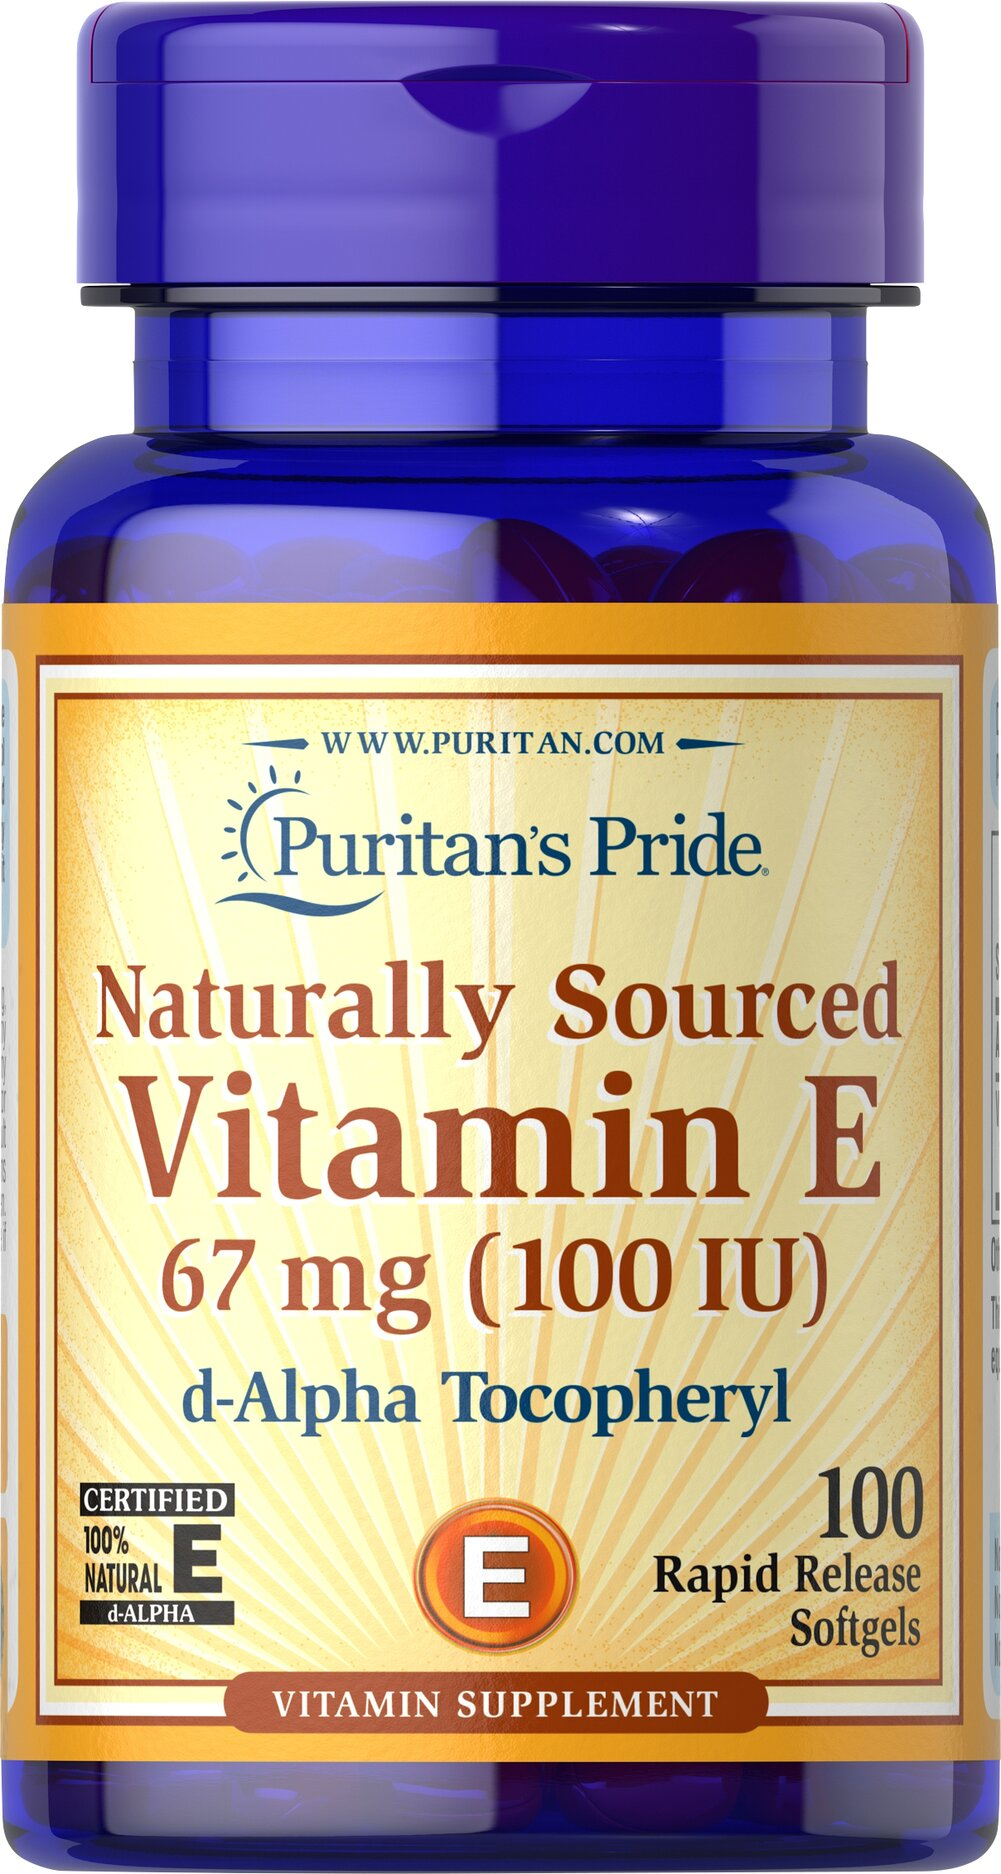 Vitamin E-100 iu 100% Natural Thumbnail Alternate Bottle View